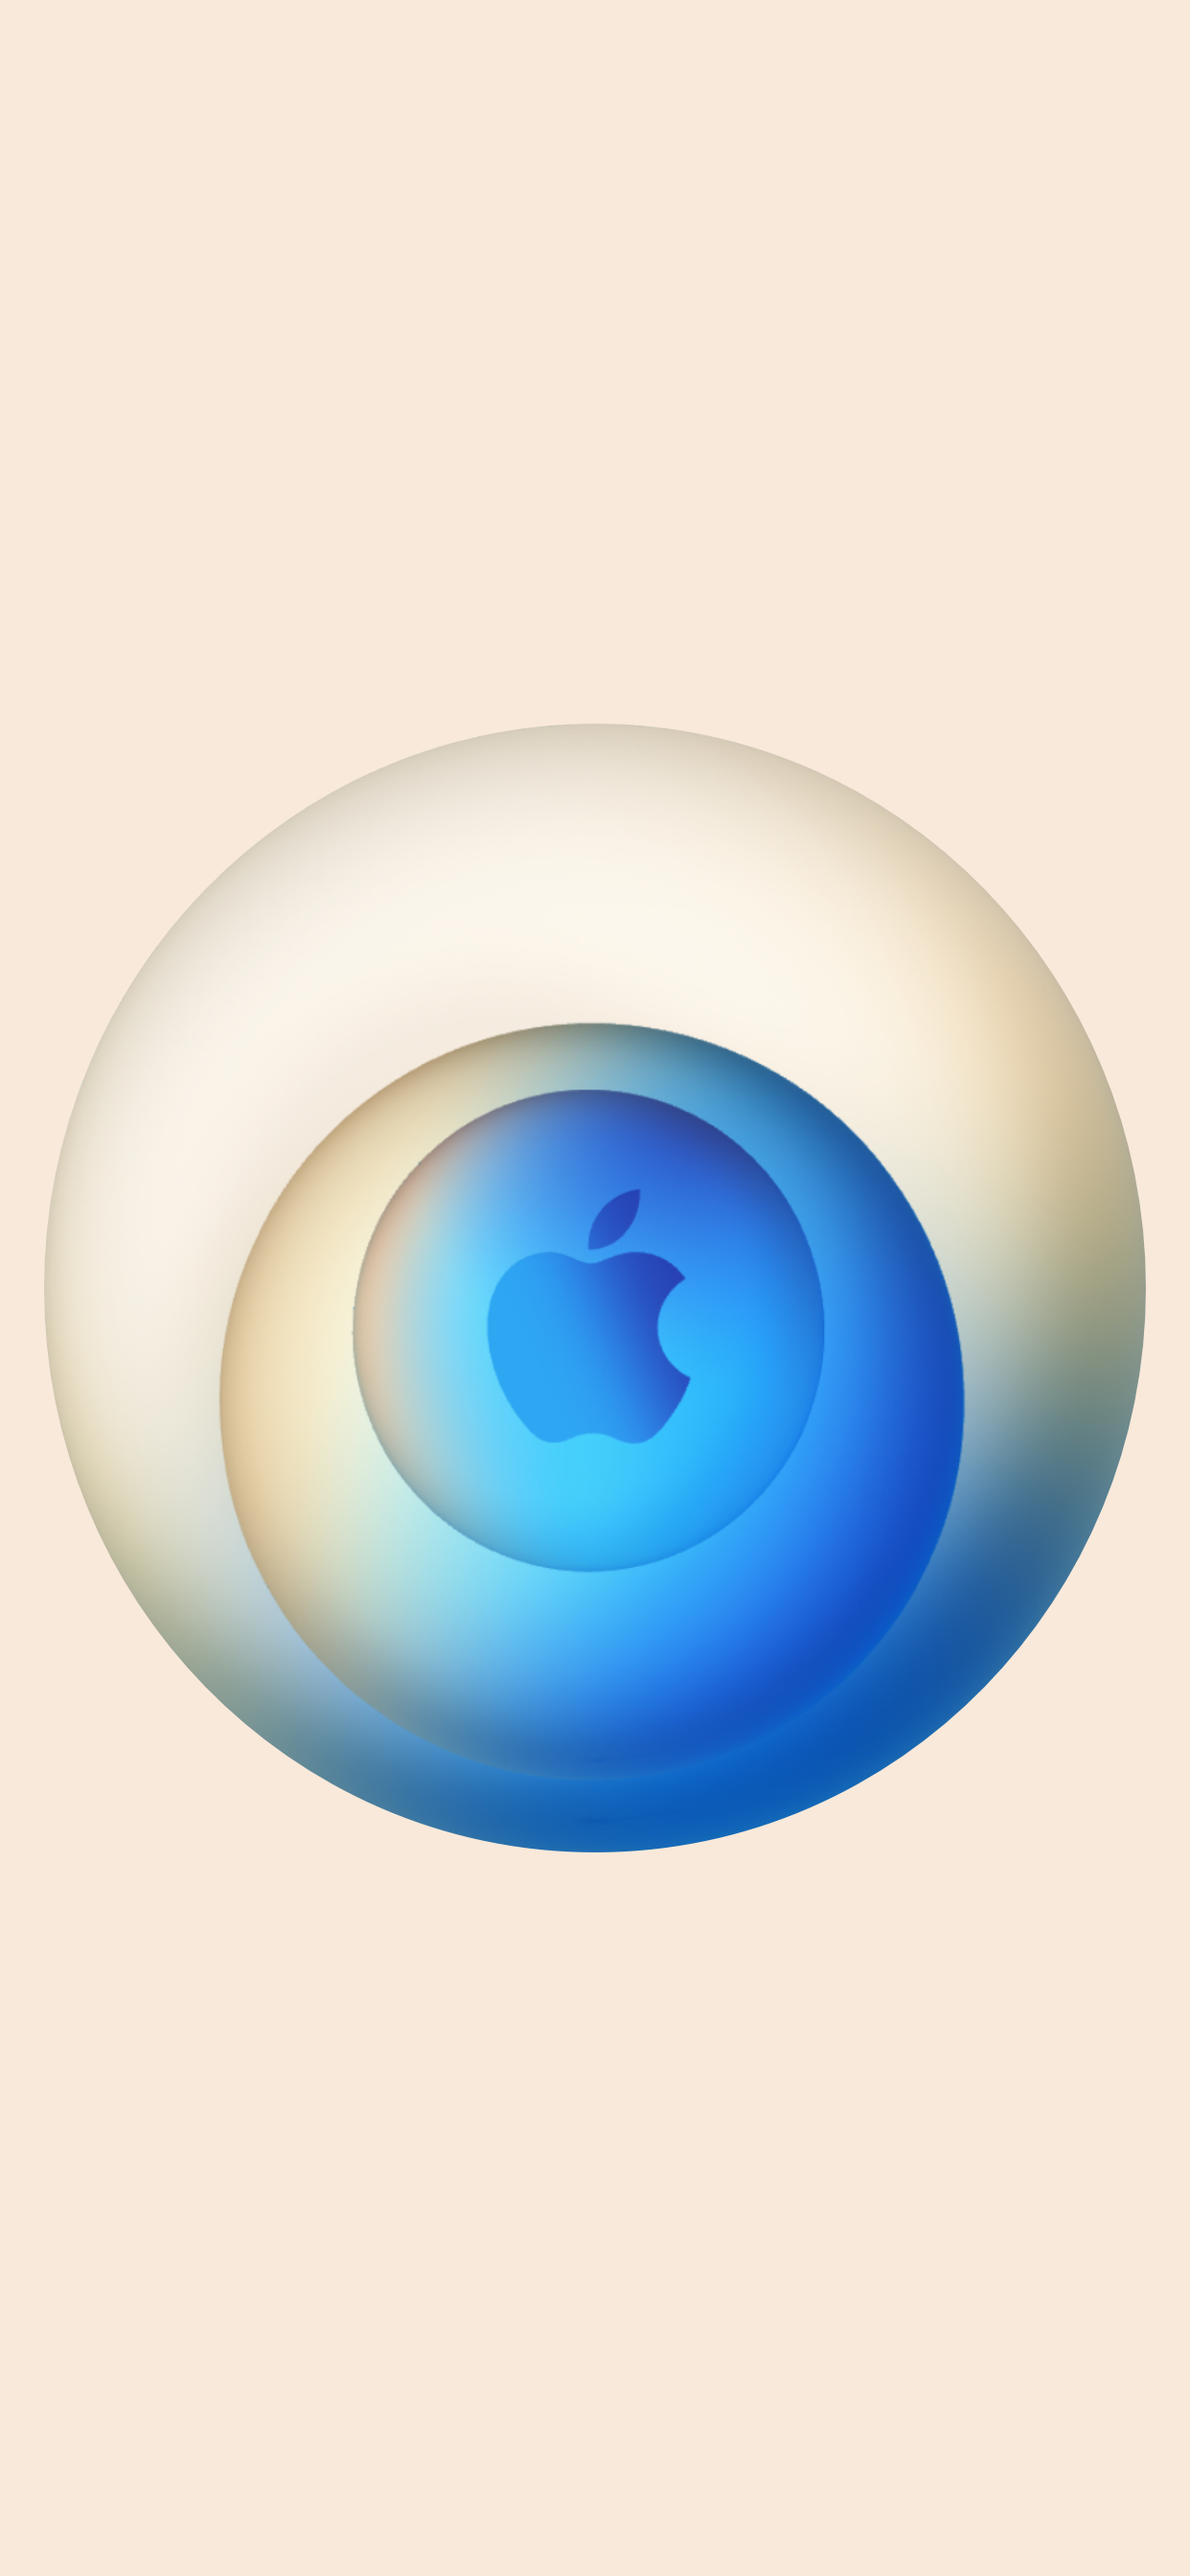 Hi Speed wallpapers Apple Event October 2020 iDownloadBlog iPhone 9techeleven inverted blue